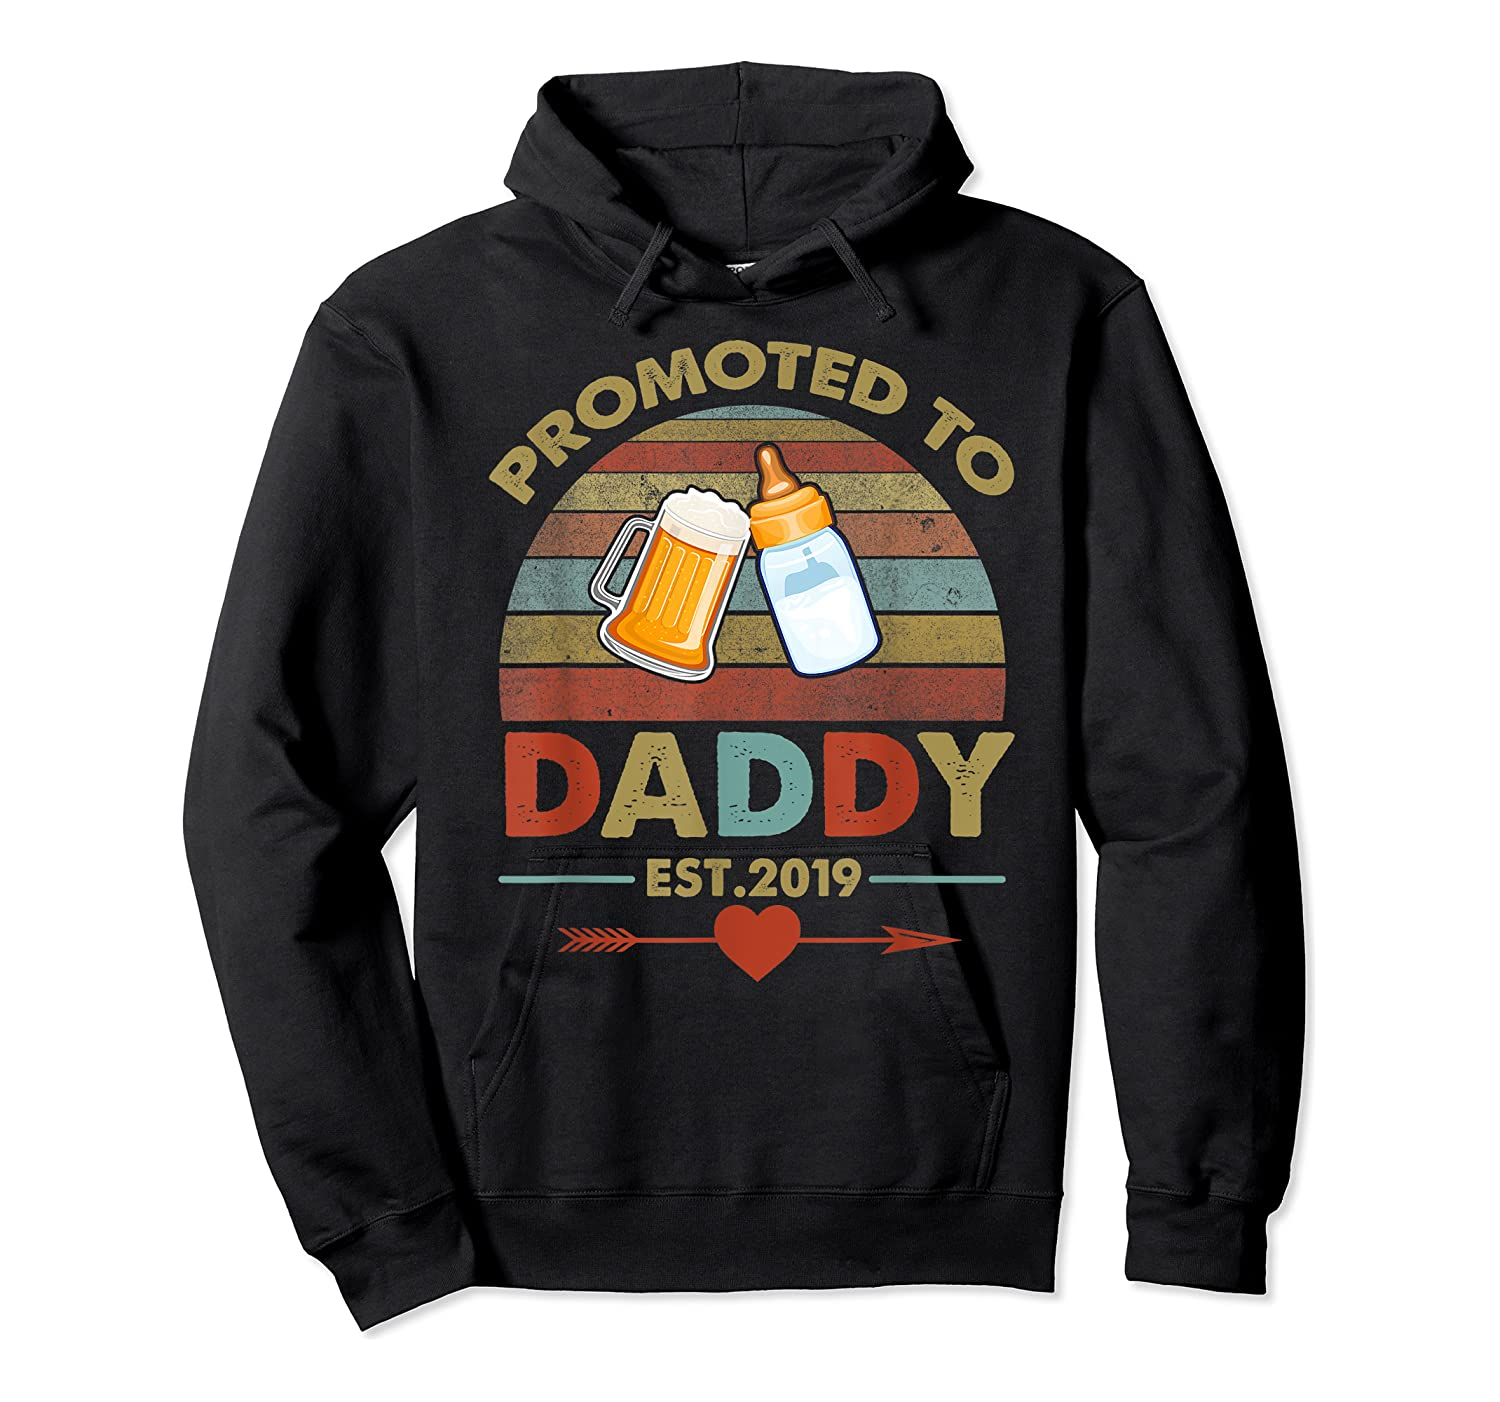 Promoted To Daddy Est 2019 Vintage Arrow T-shirt Unisex Pullover Hoodie